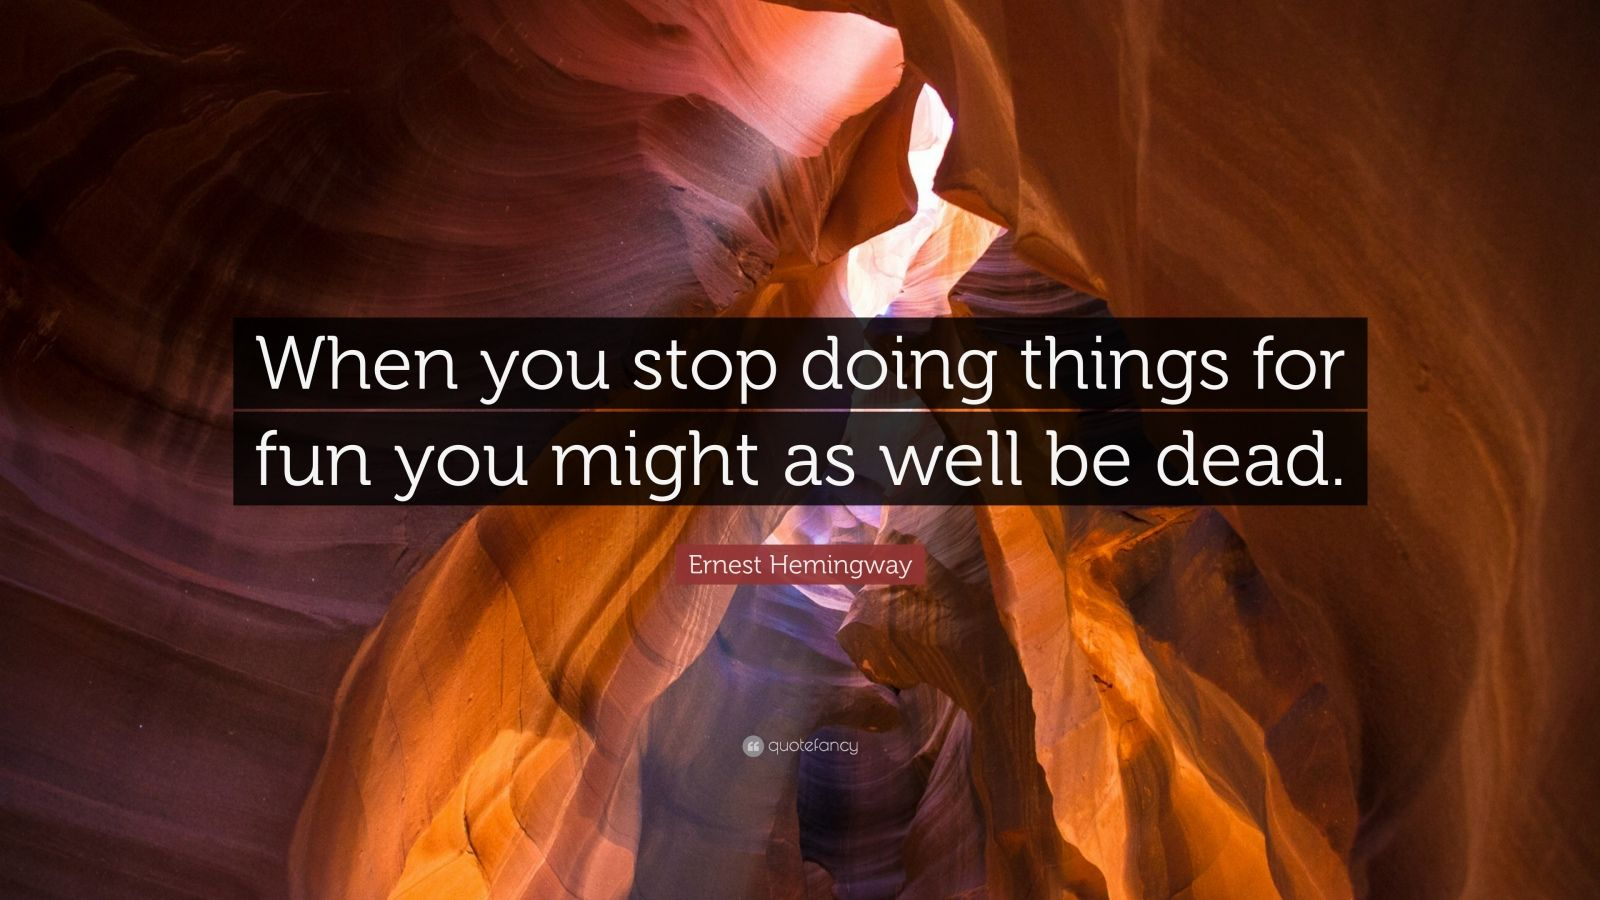 Be When Might You Doing Dead Fun You Stop Well Things